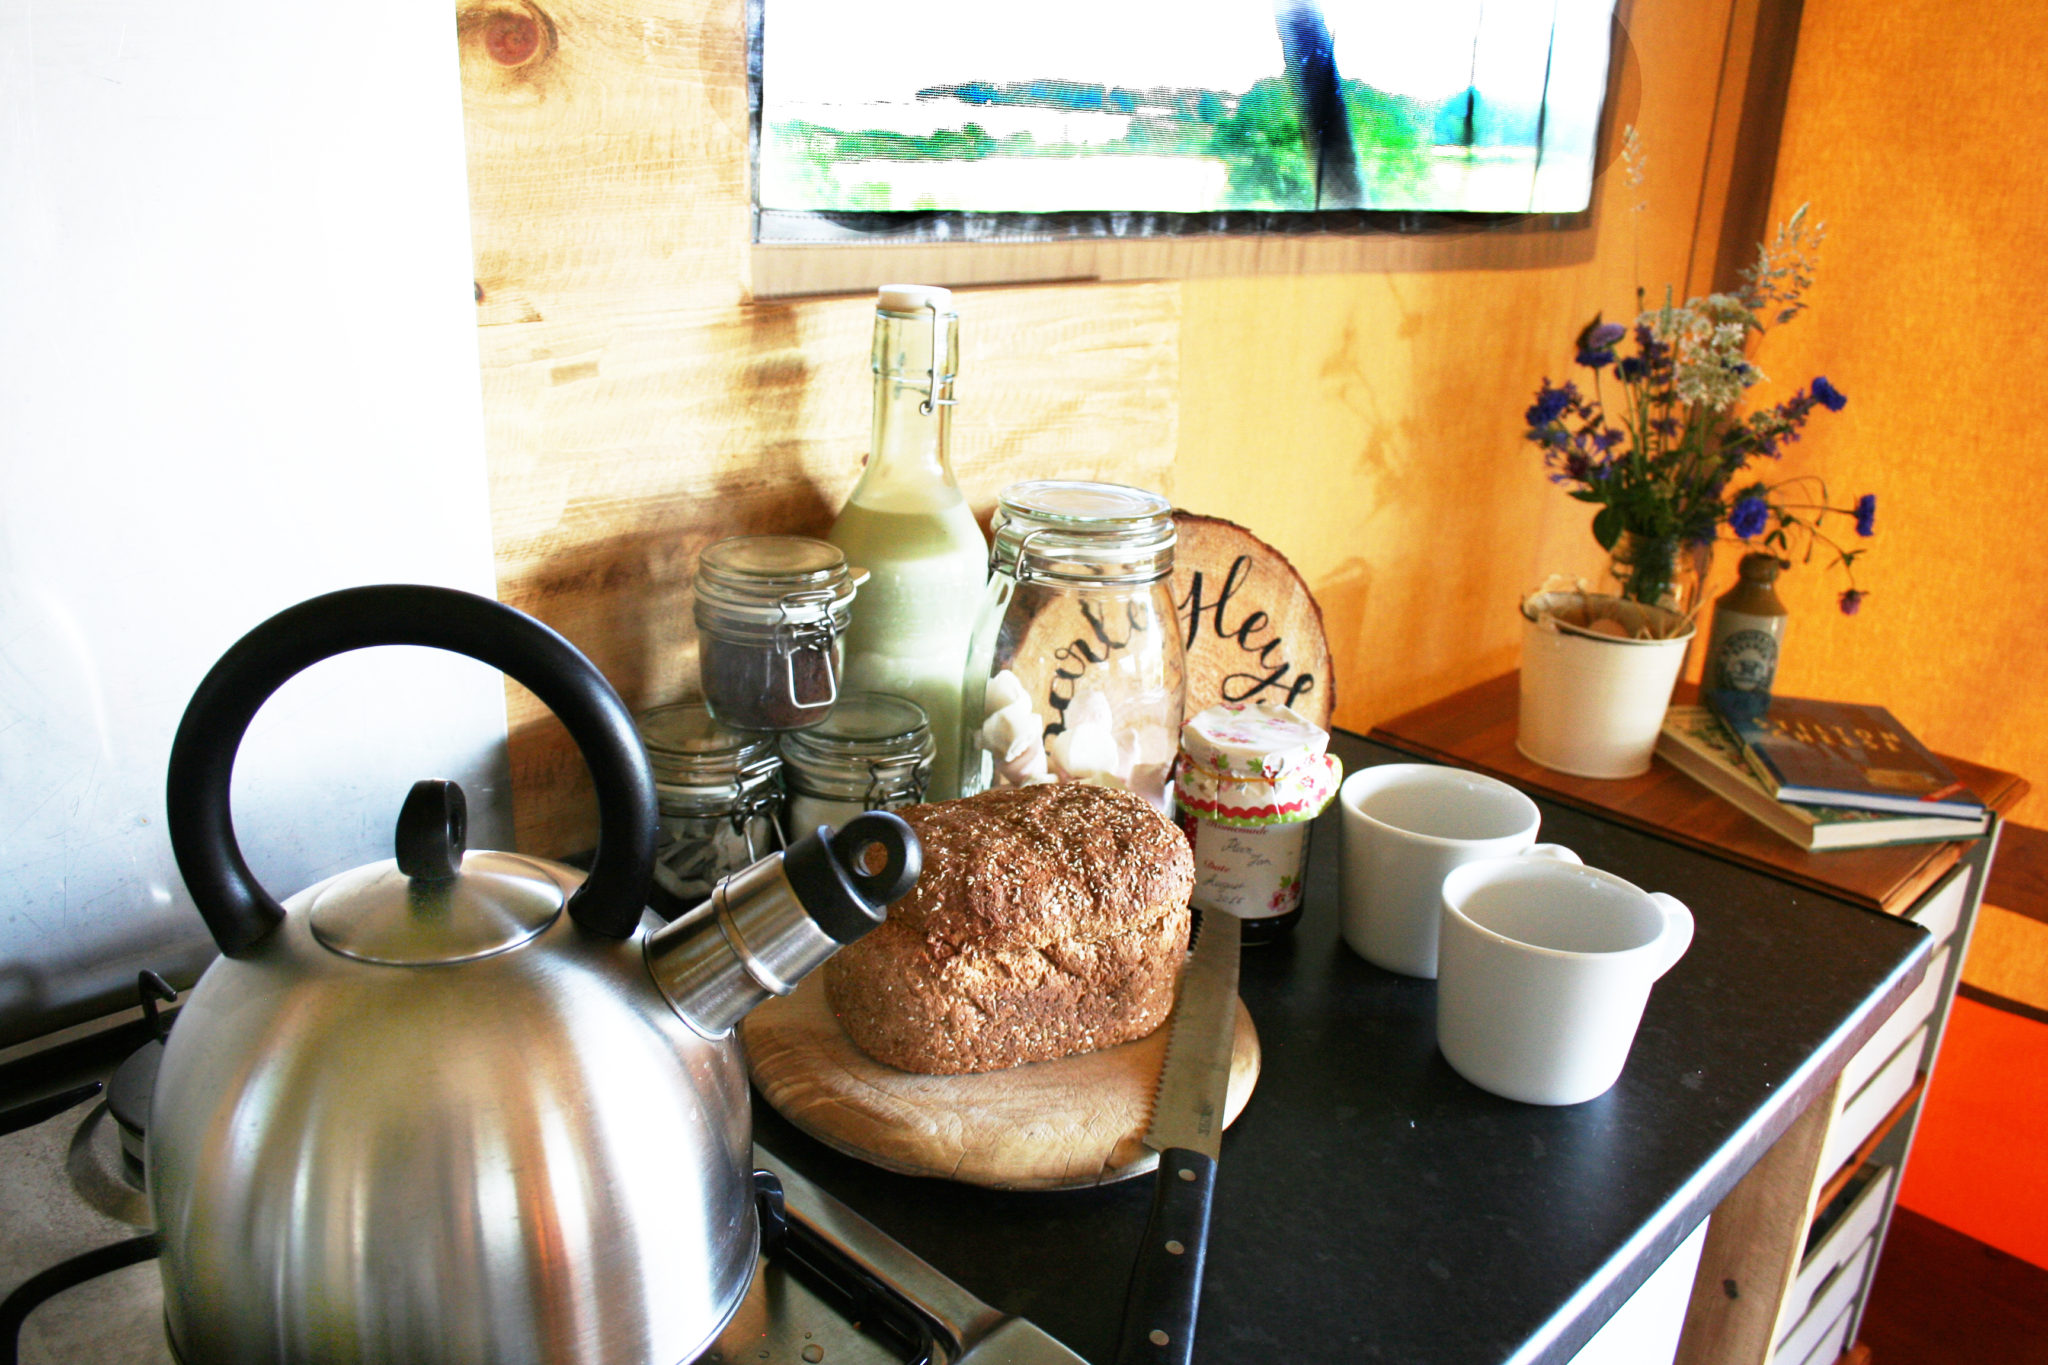 Kitchen at Village Farm Getaway, holidays glamping and luxury camping in East Midlands and Leicestershire